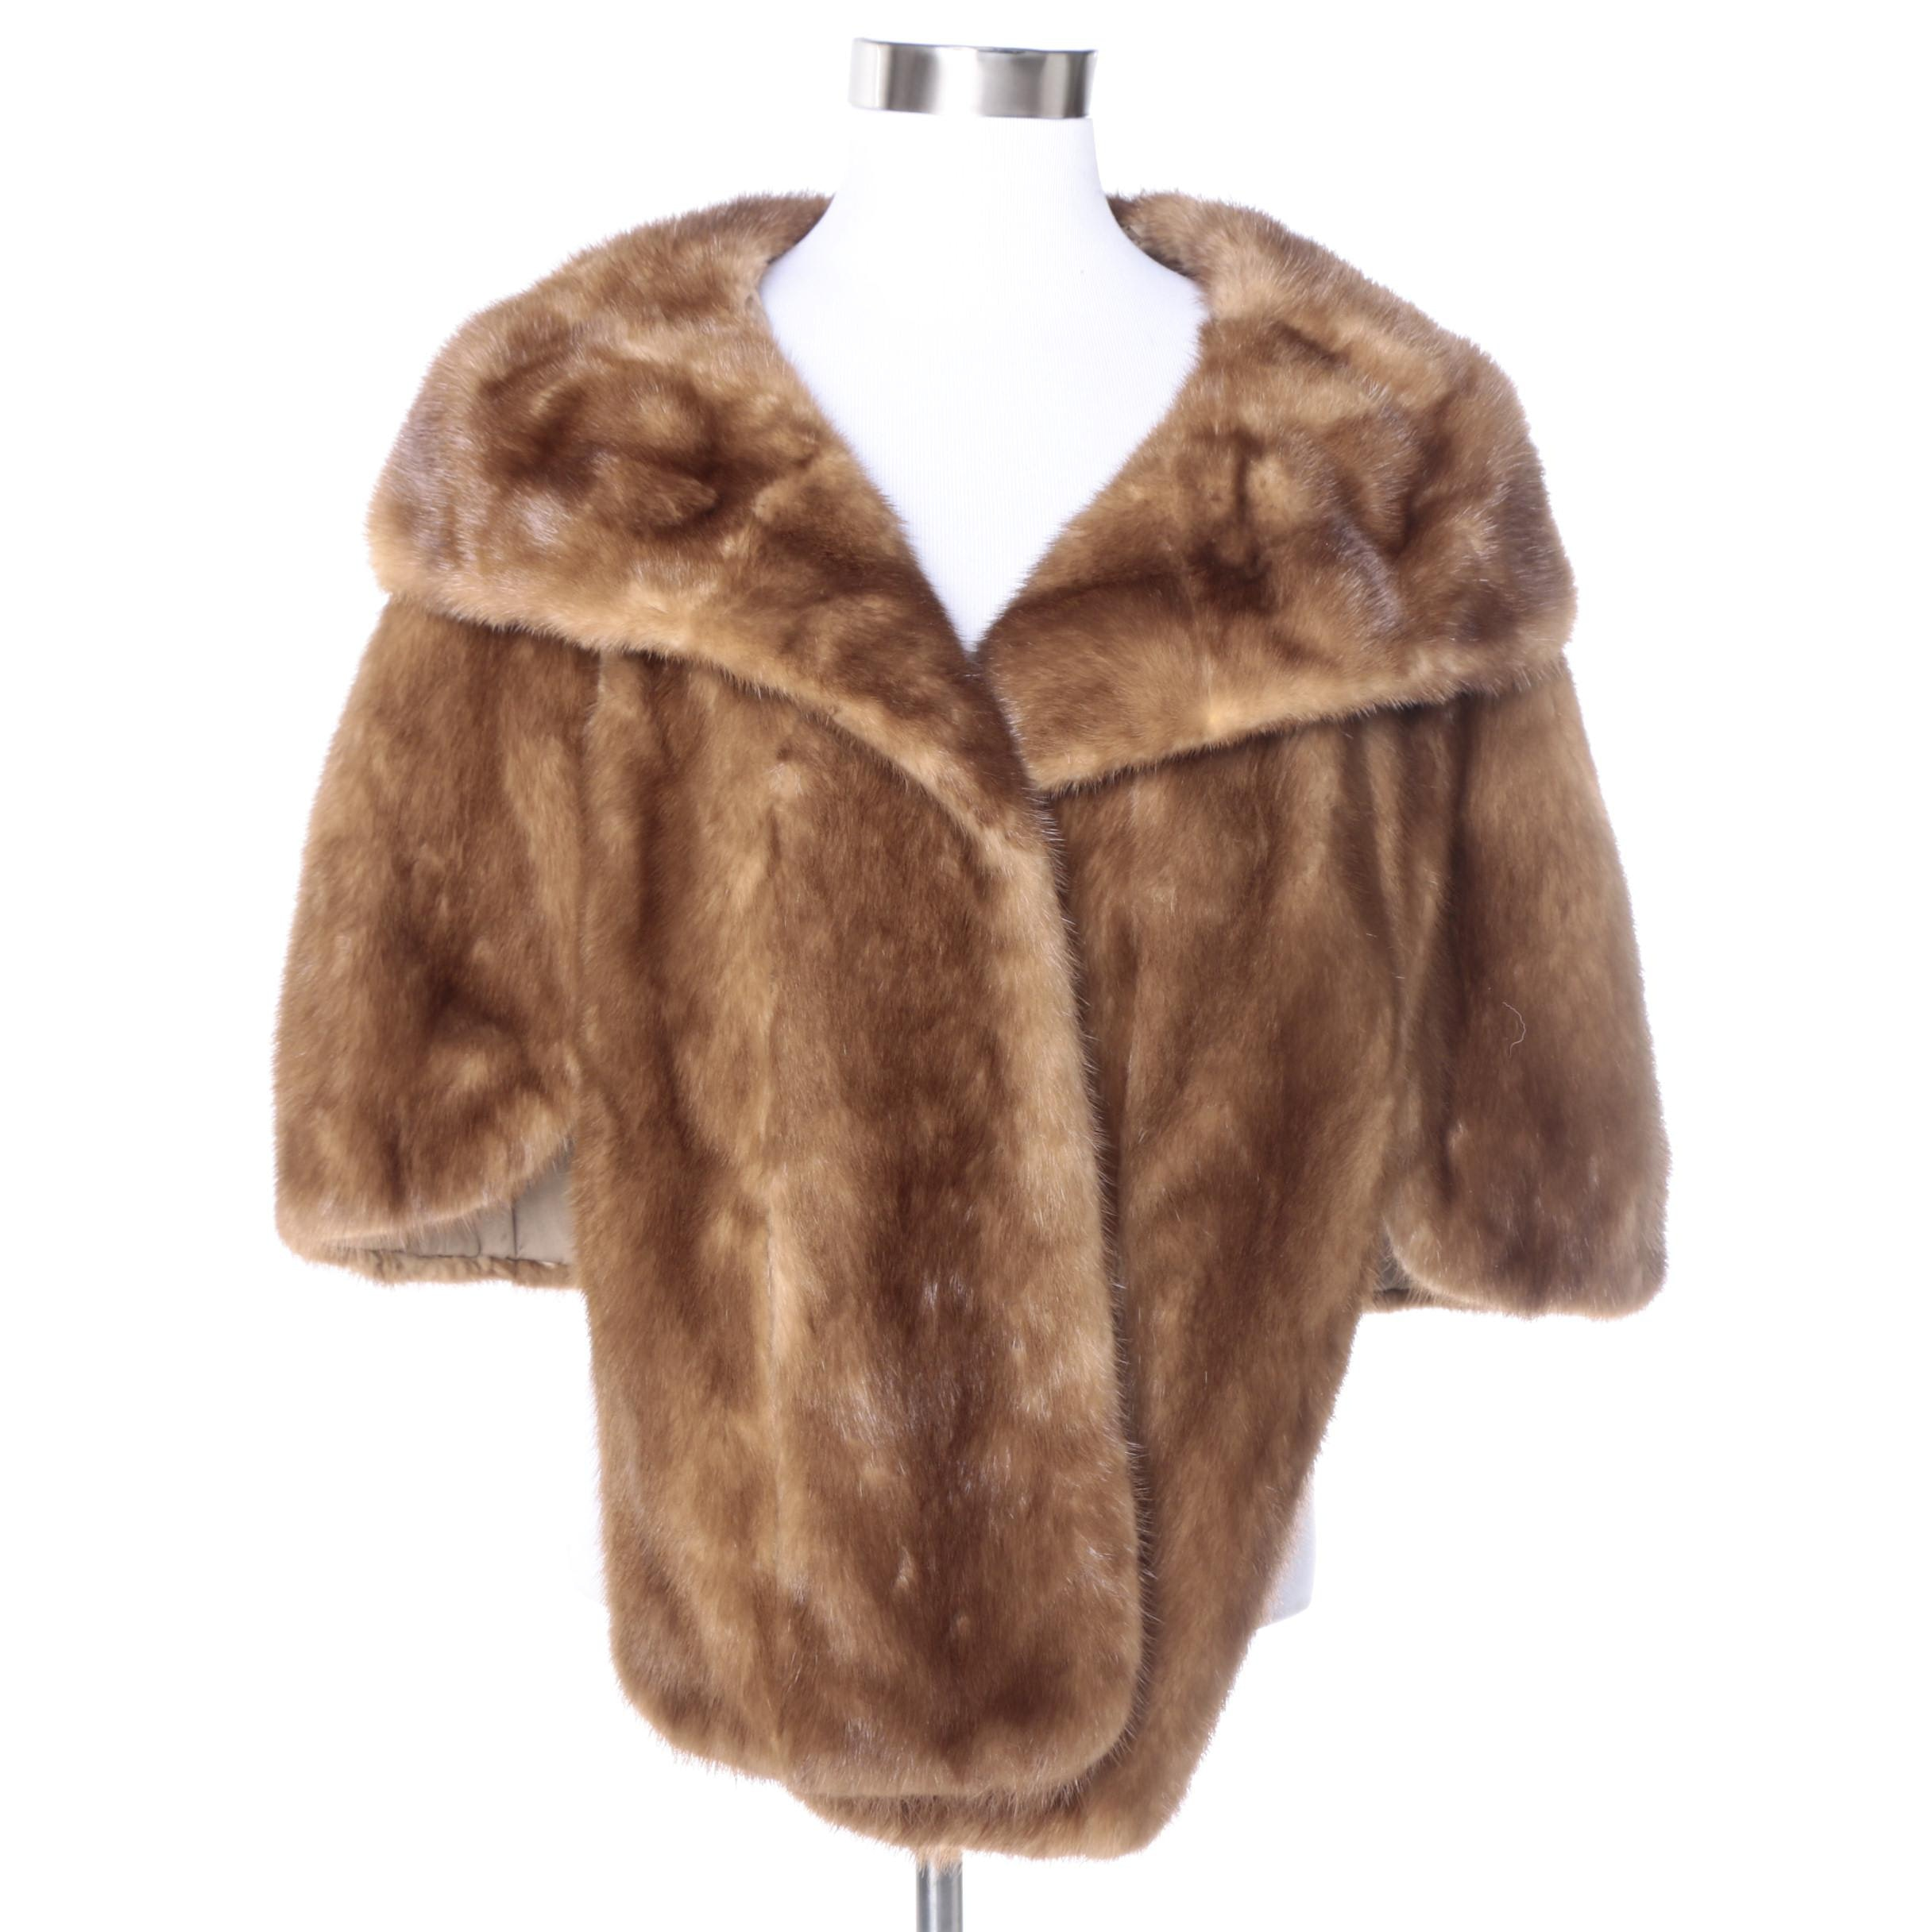 Mink Fur Stole by The Broadway of Southern California